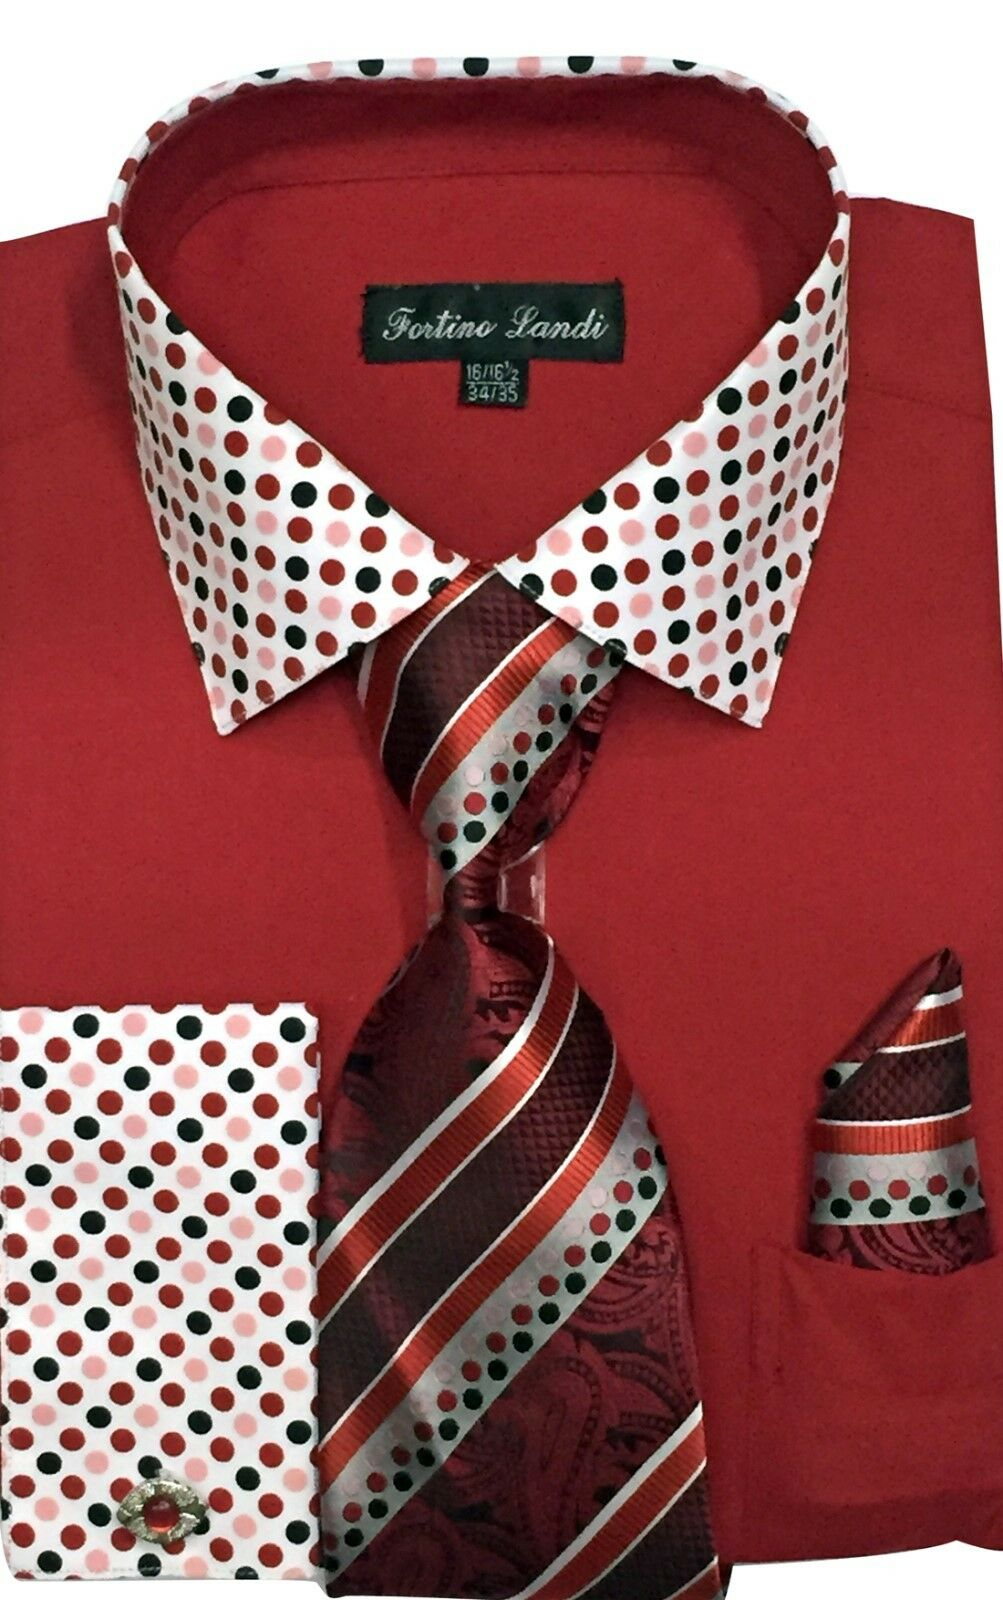 Fortino Landi Shirt FL630-Red - Church Suits For Less